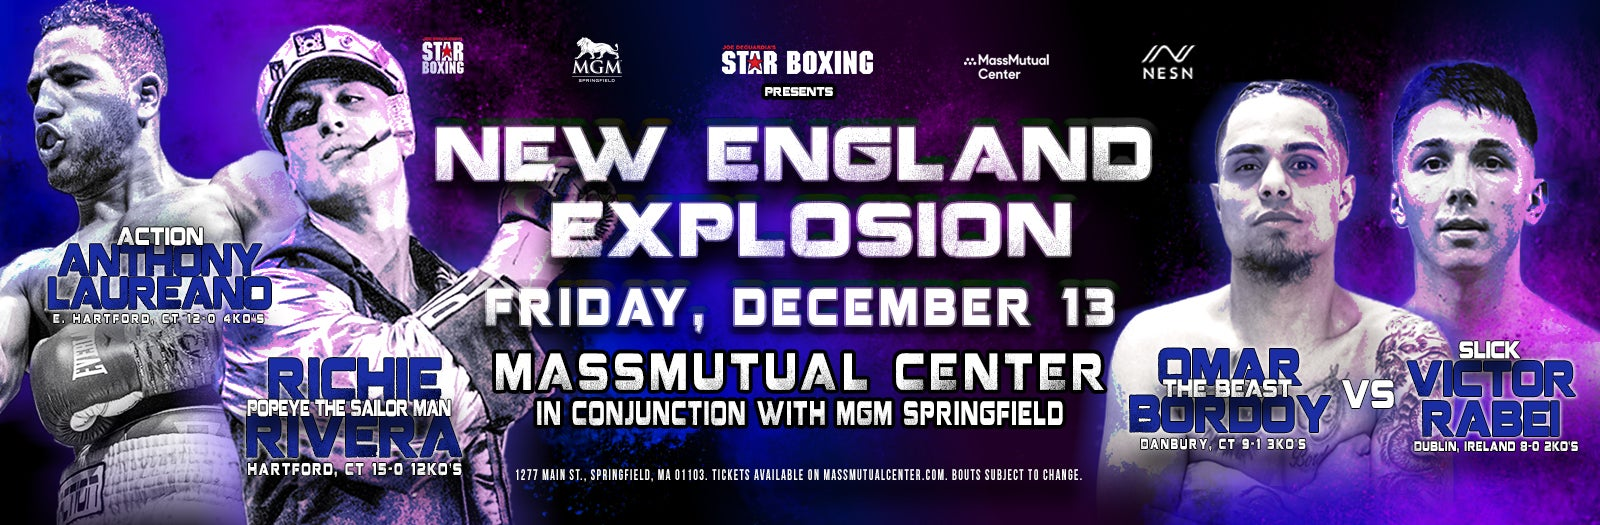 Star Boxing Presents New England Explosion